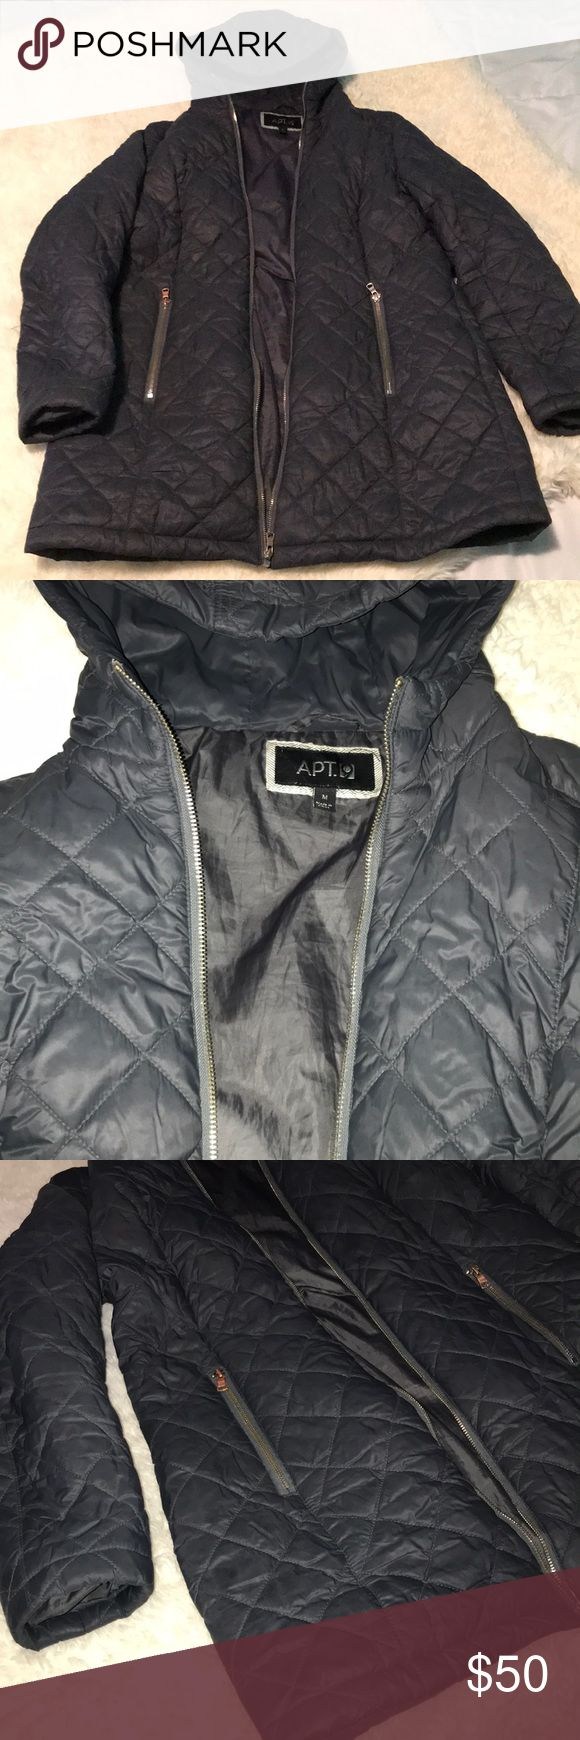 Apt 9 Dark Gray Coat Super comfy and warm winter coat by Apt Size M but  fits S as well! No tears or damage. (Not North Face, just for exposure) North  Face ... 4c5dac38eb24